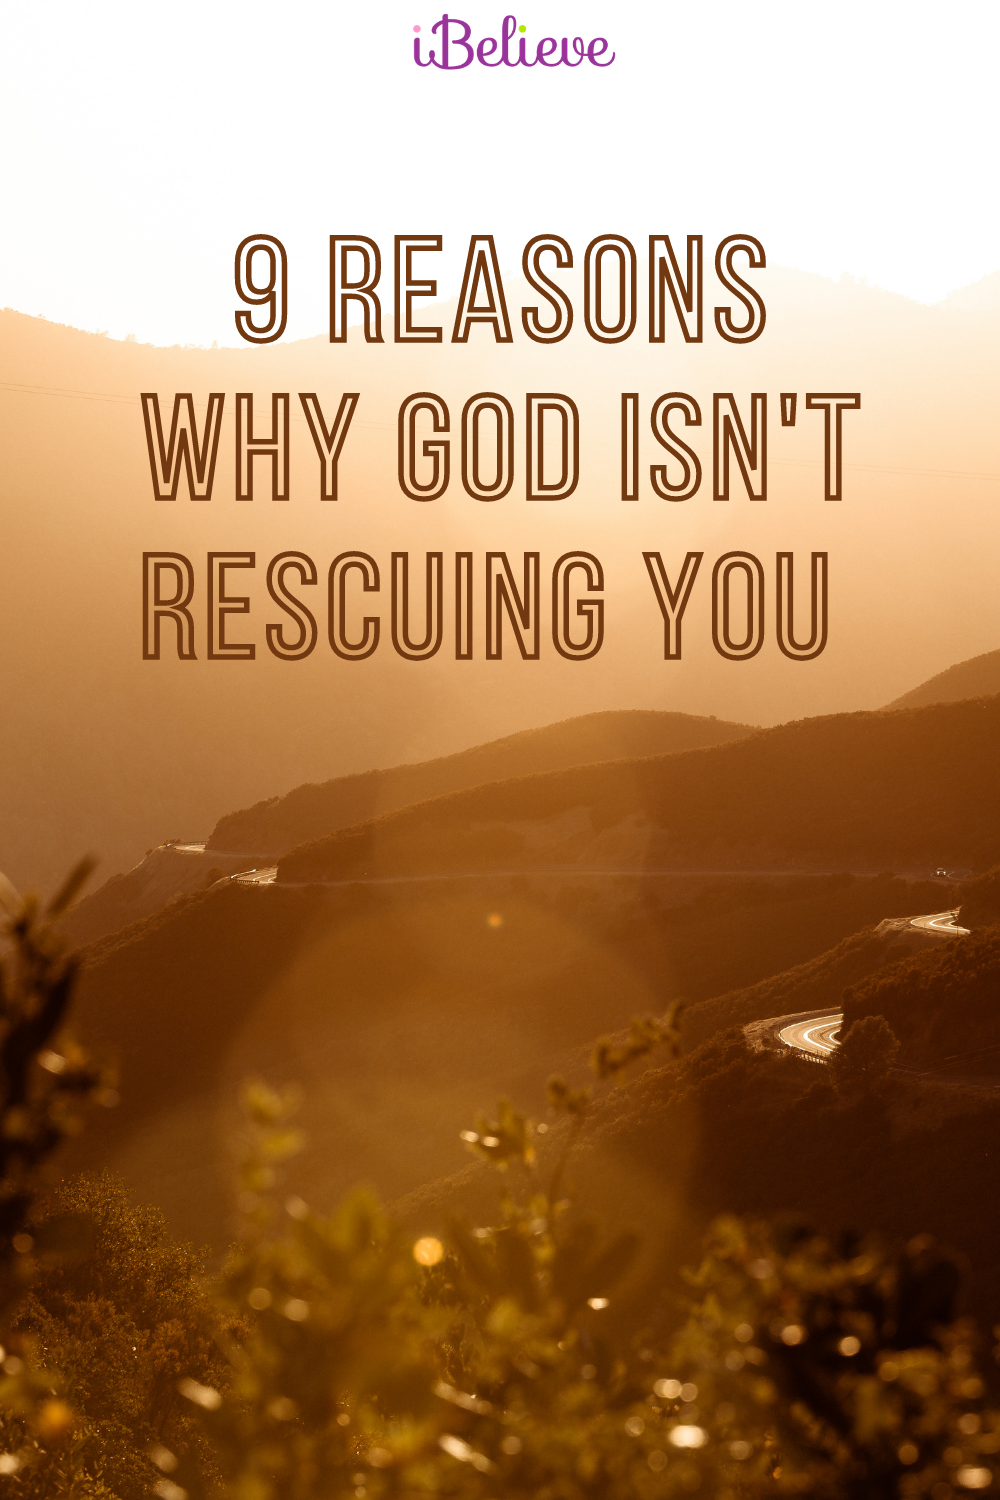 9 Reasons Why God Isn't Rescuing You